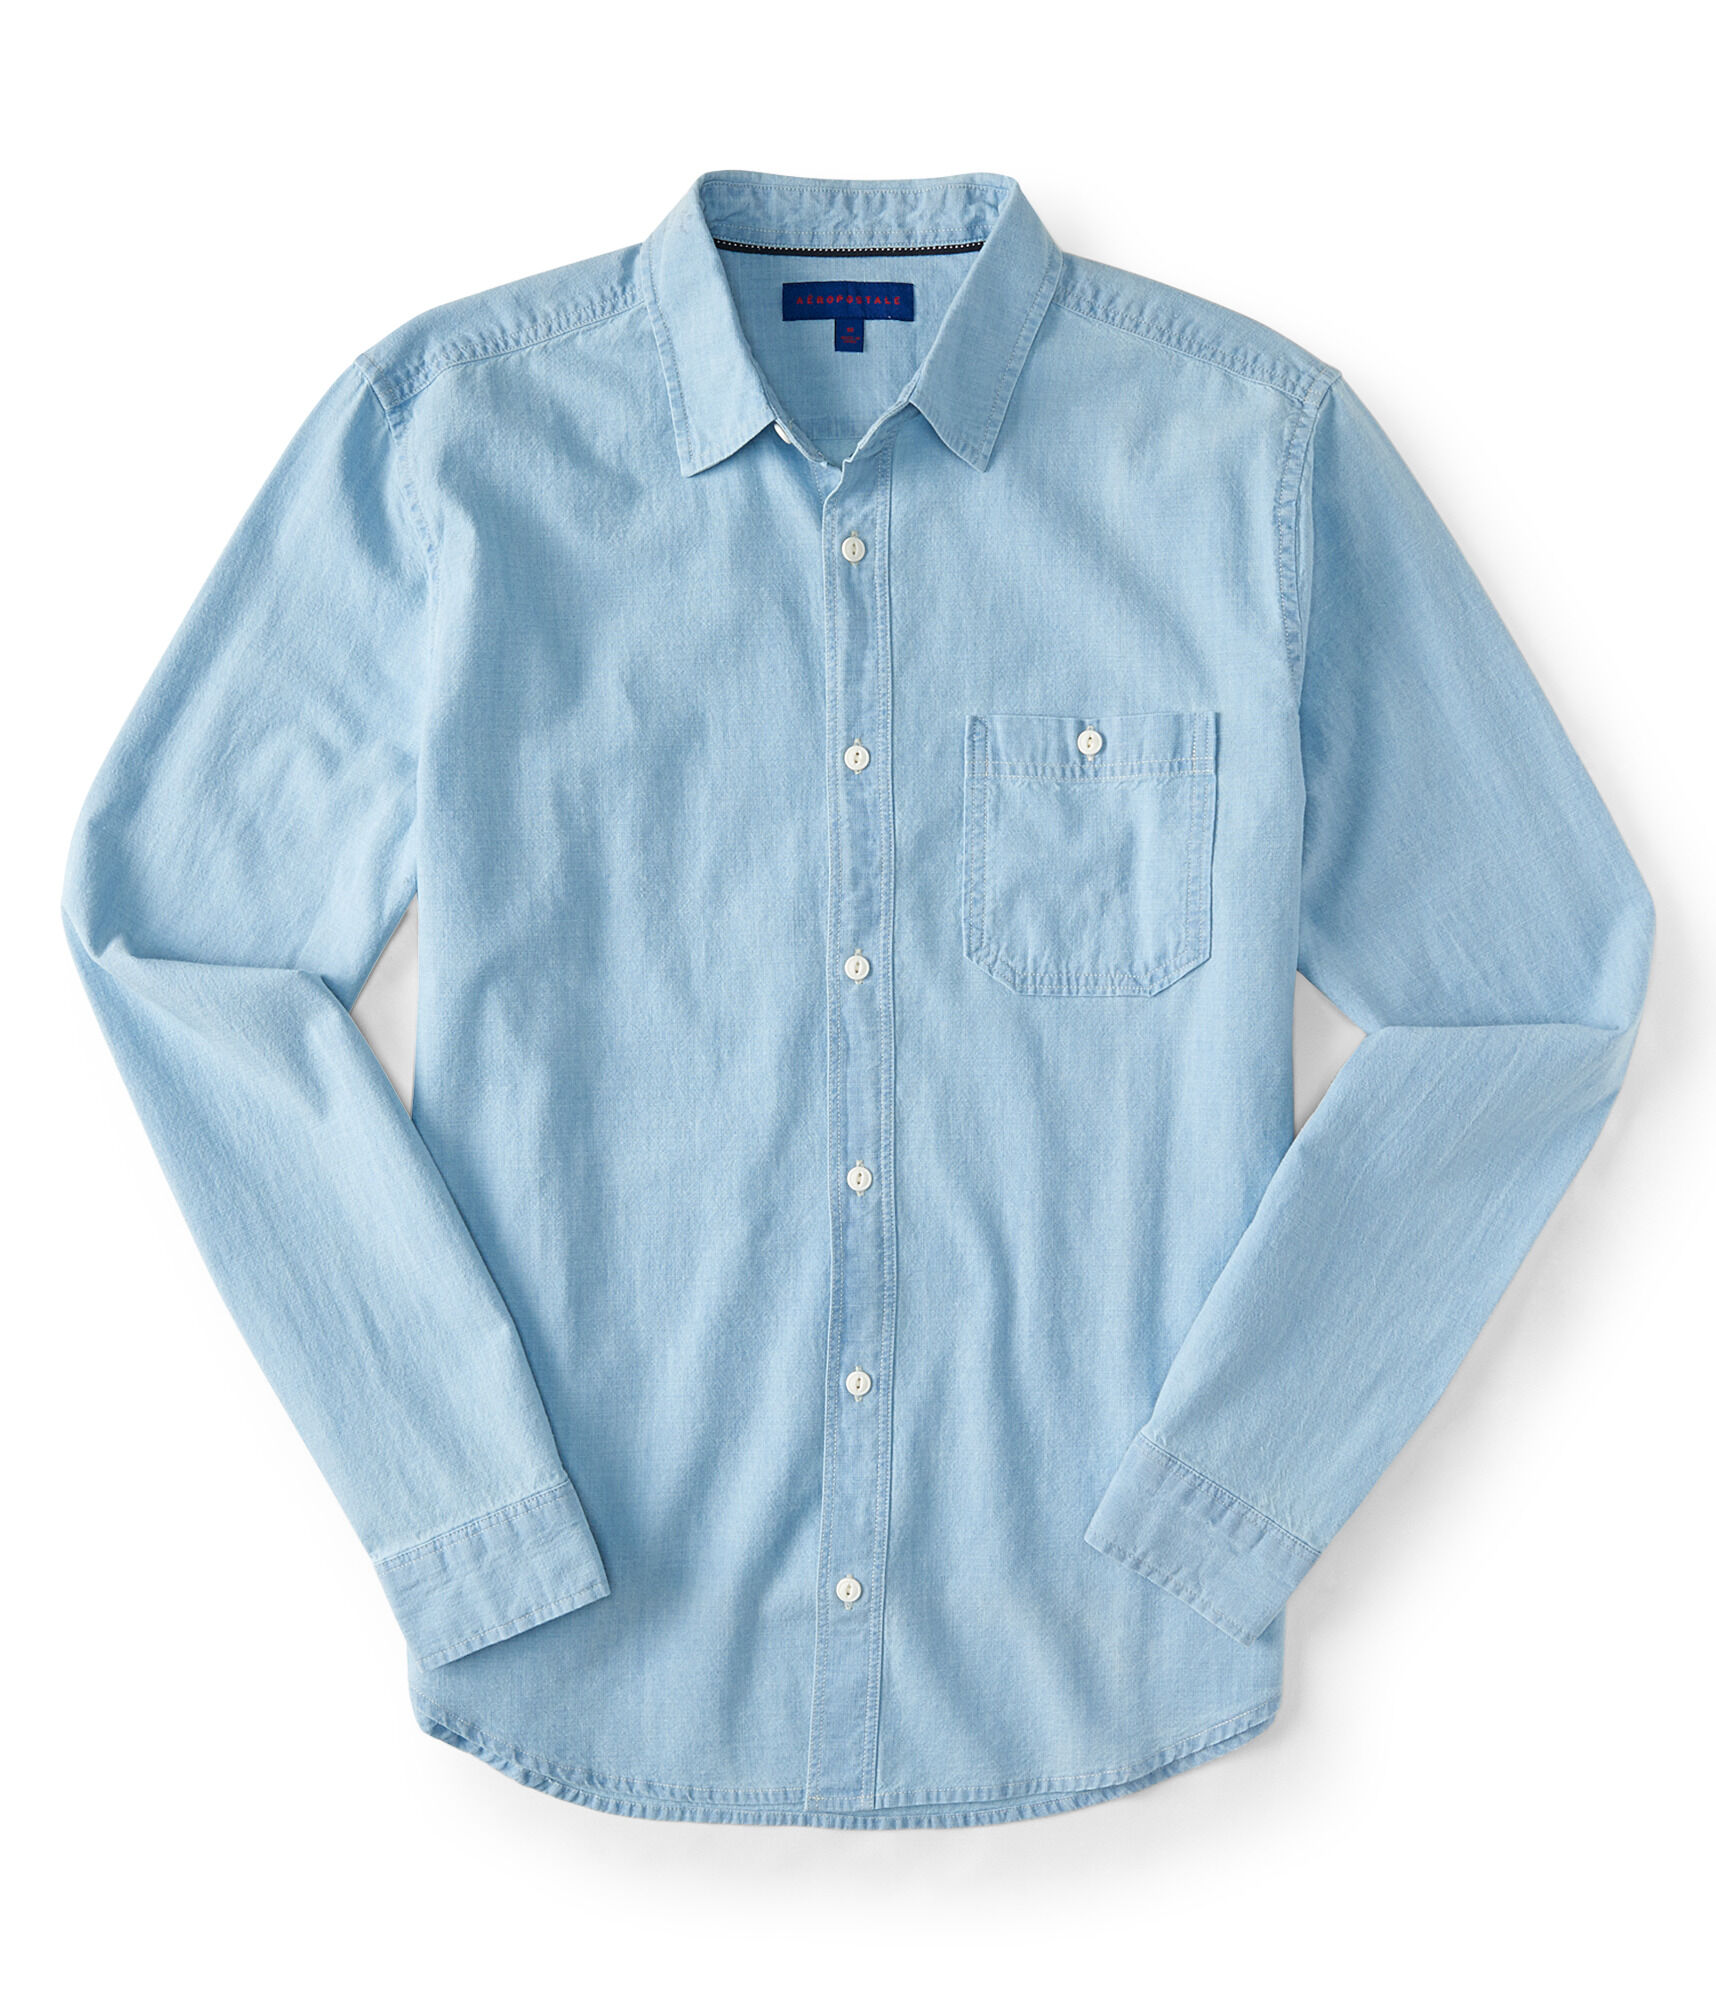 Chambray Shirt: fabric & care % Cotton. Machine wash. Imported. overview Chambray denim. Light indigo wash. Long sleeves with button cuffs. Collar, button front. Button-flap patch pockets at chest, slant pockets at front. Button-tabs at back. The water used in the.